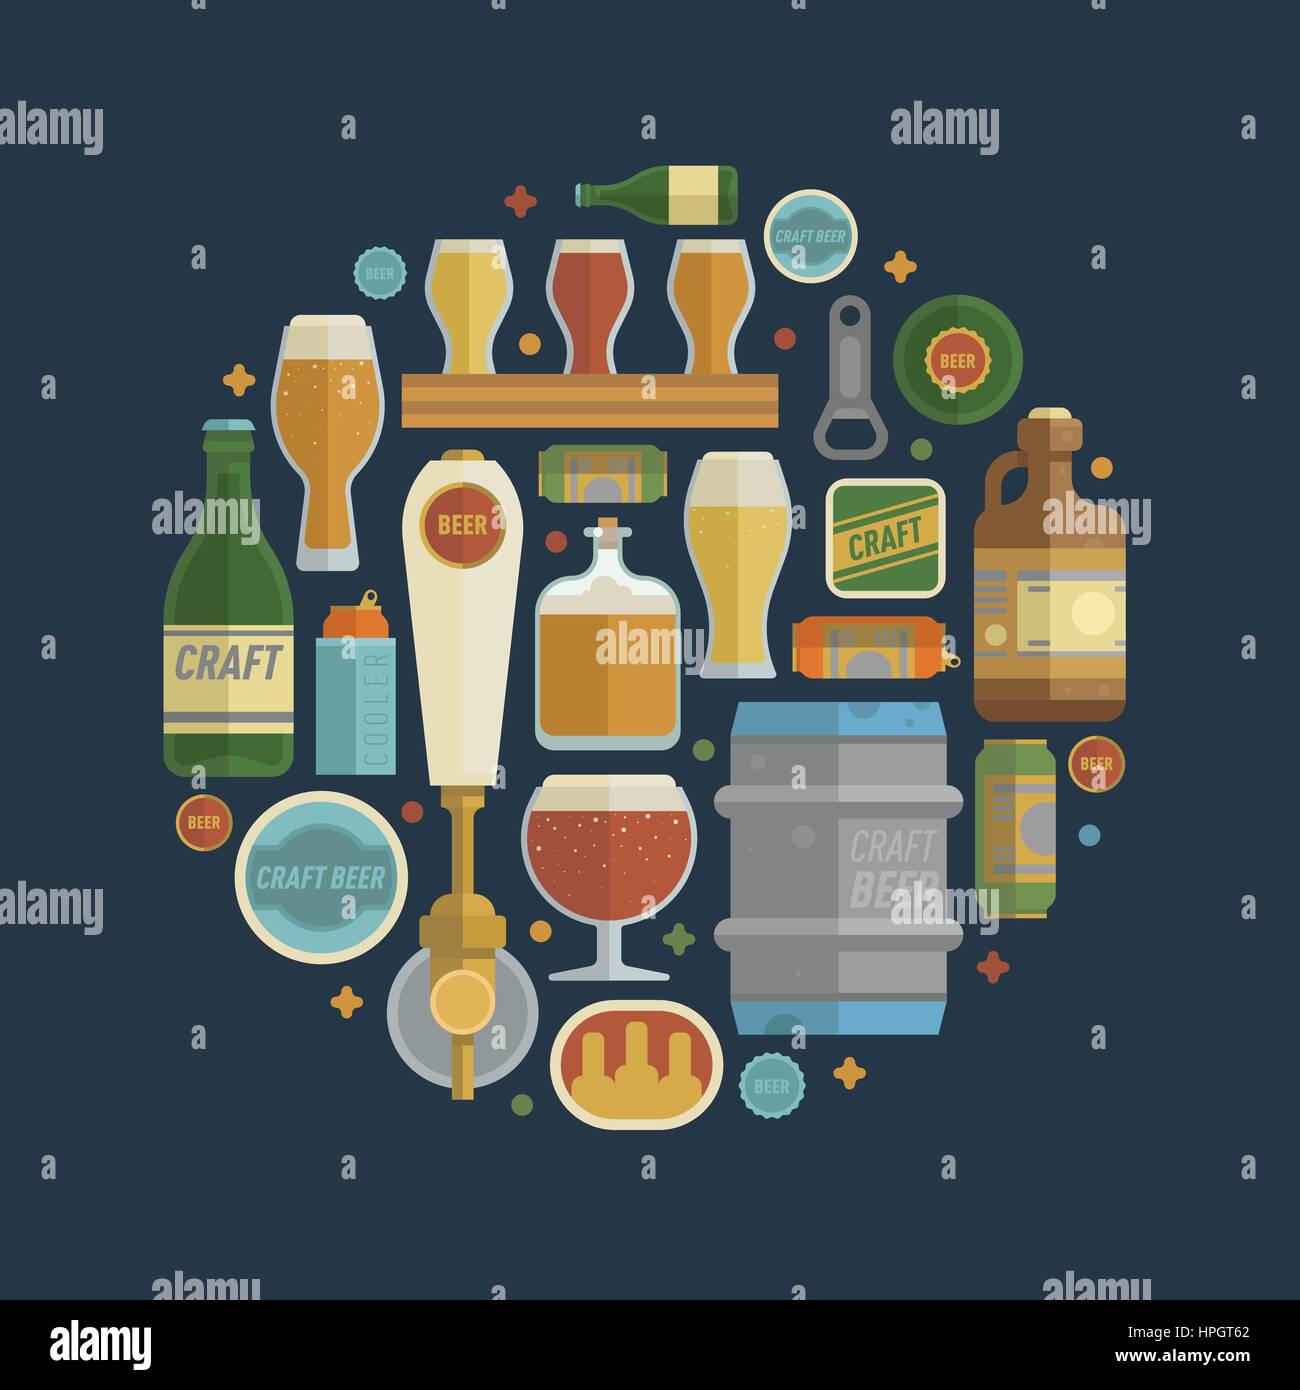 Craft beer items creative set in circle. Differens beer elements include bottles, glasses, keg, can and bottle opener Stock Vector